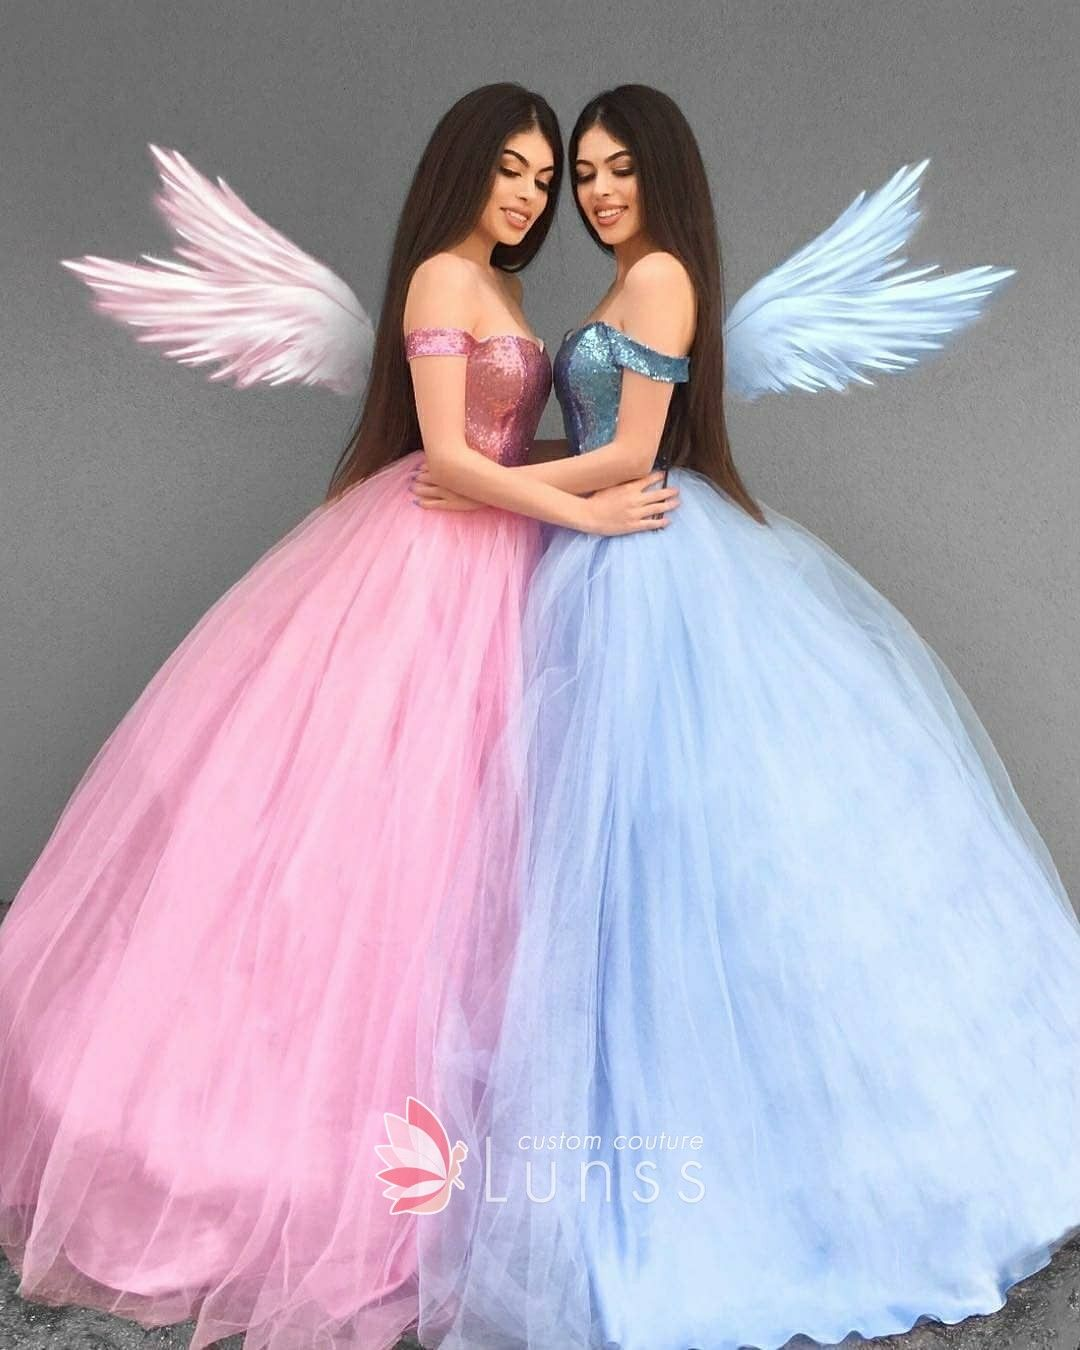 Custom Made Dresses Wedding And Bridesmaid Dresses Prom Gowns Online Princess Ball Gowns Ball Gowns Prom Beautiful Dresses [ 1350 x 1080 Pixel ]